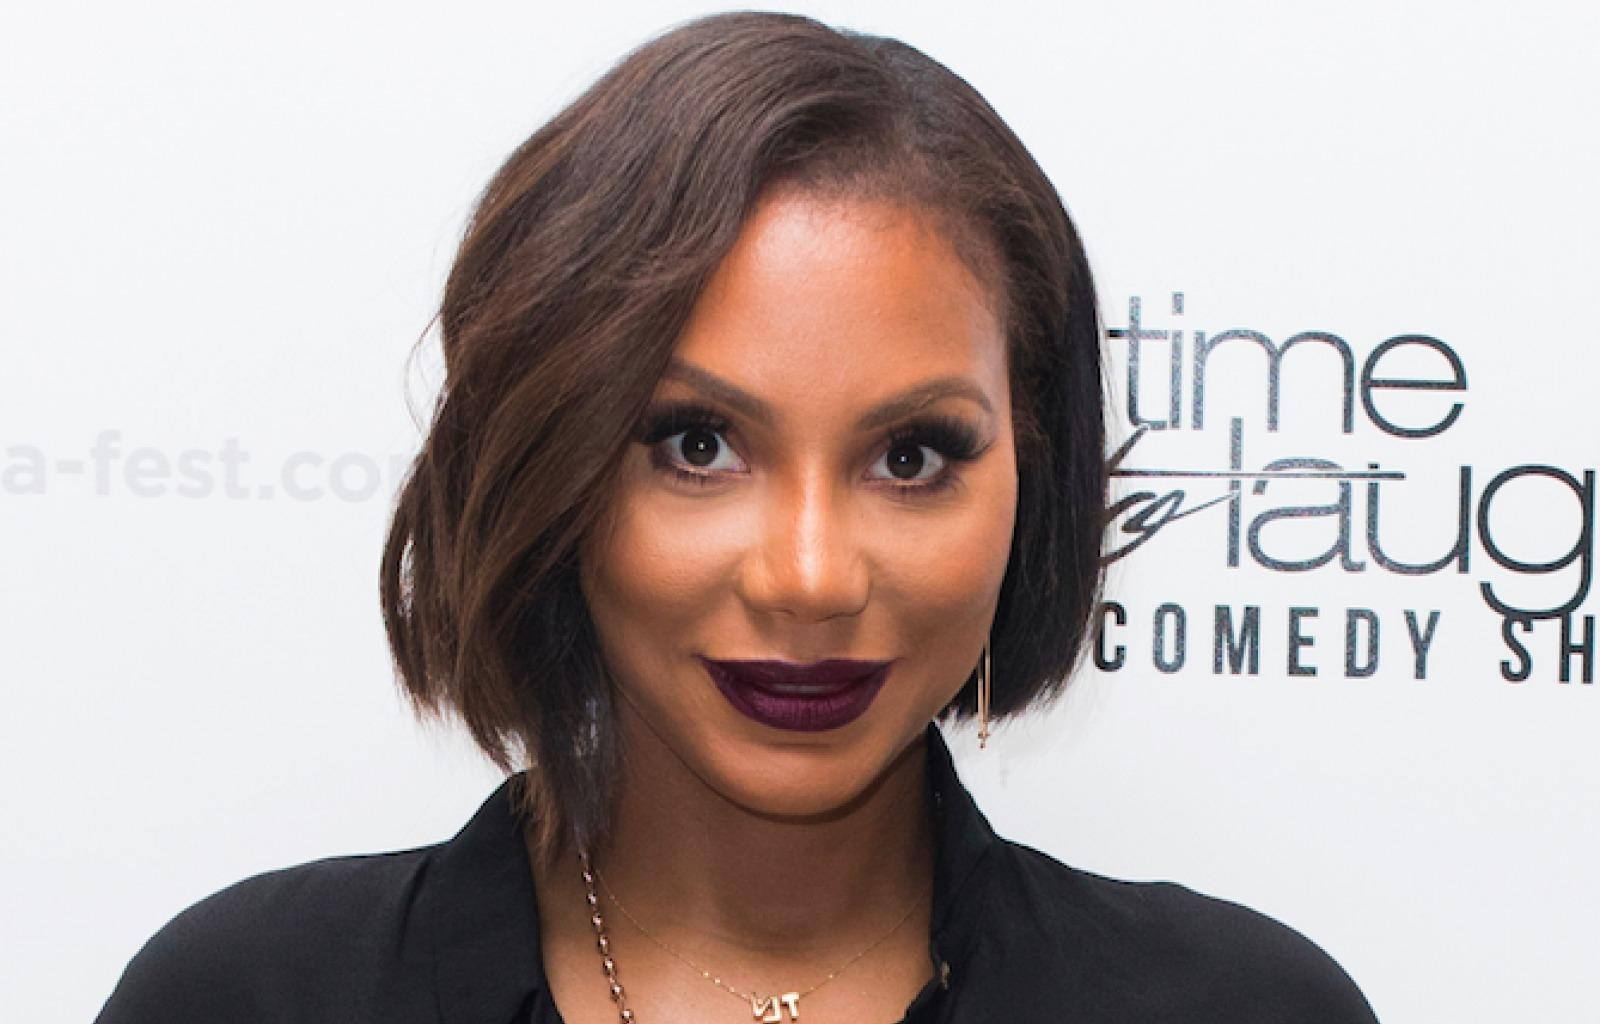 Tamar Braxton's Fans Freak Out Following Her Alleged Suicide Attempt, Flooding Her Social Media With Love